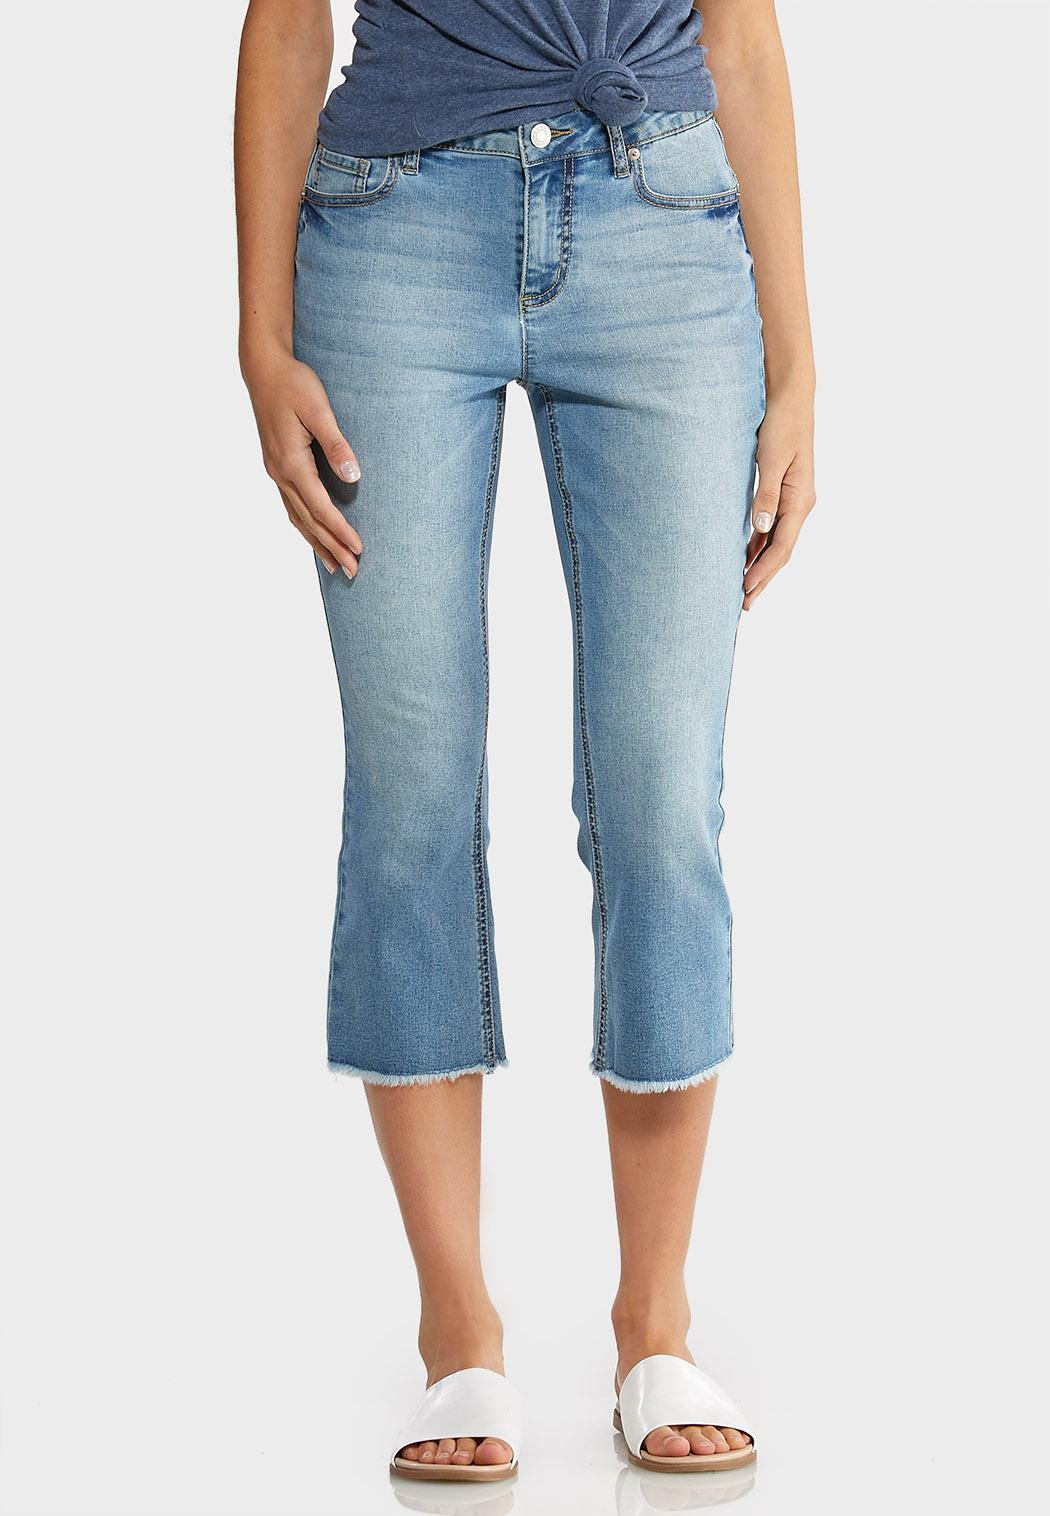 98df6a5b5cb Jeans For Women - Denim, Jackets, Skirts & Vests